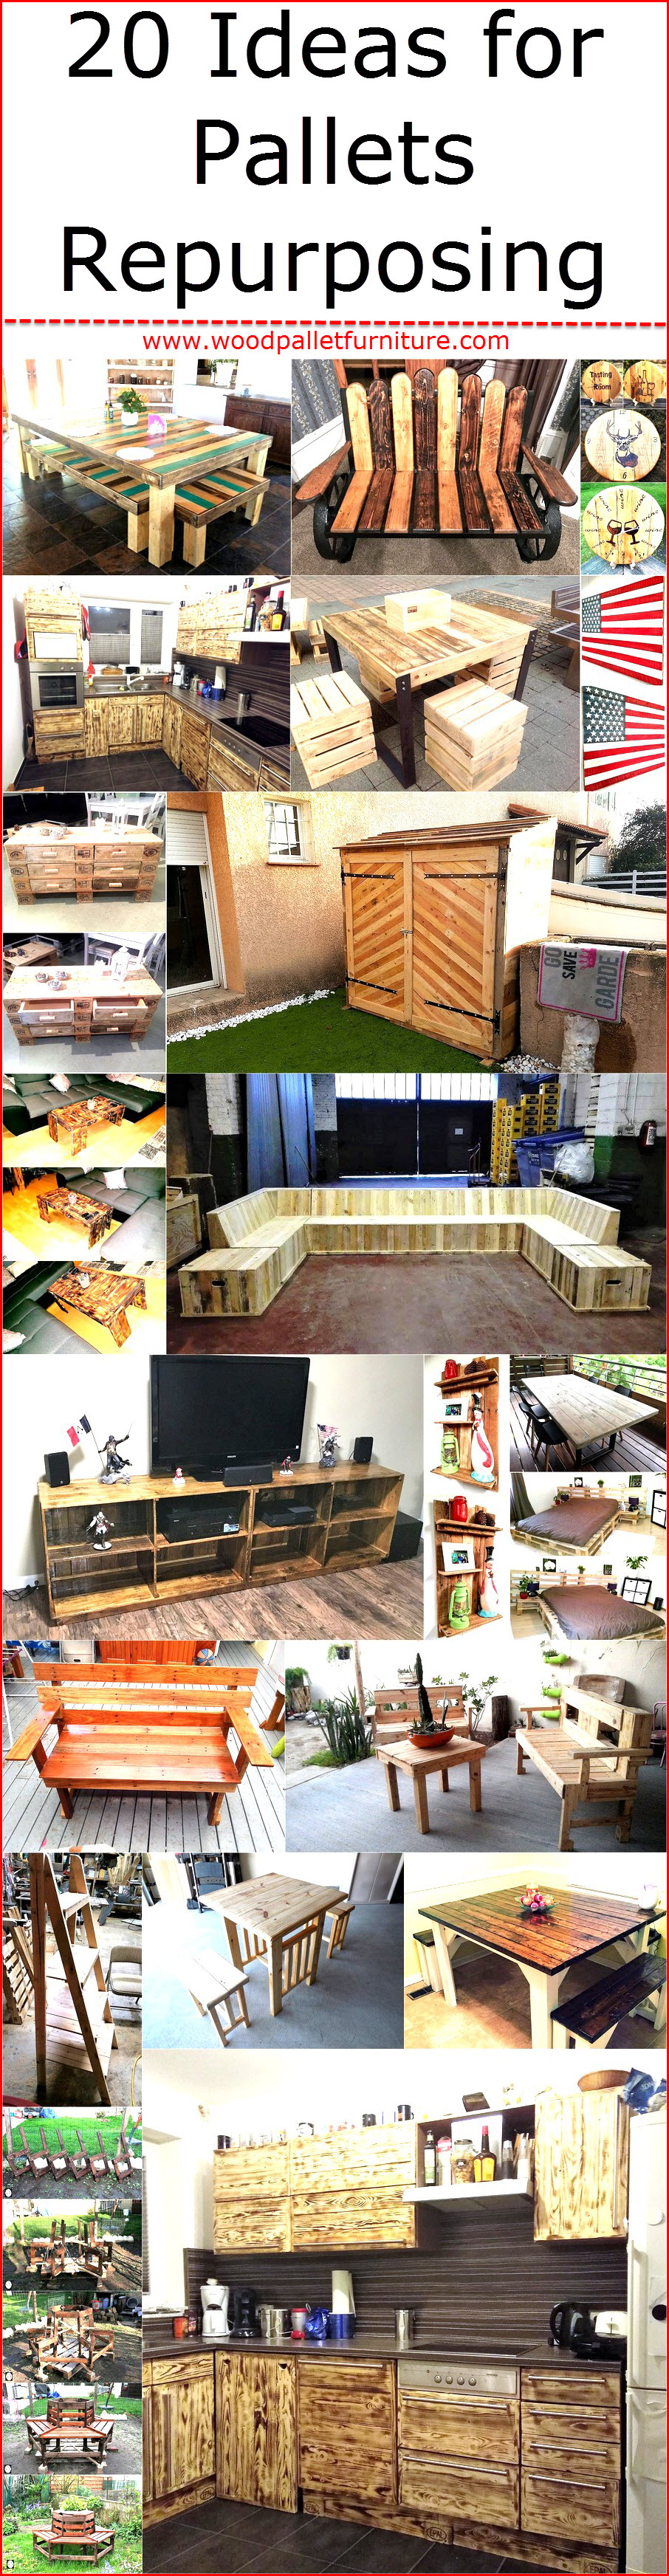 20 Ideas For Pallets Repurposing Wood Pallet Furniture